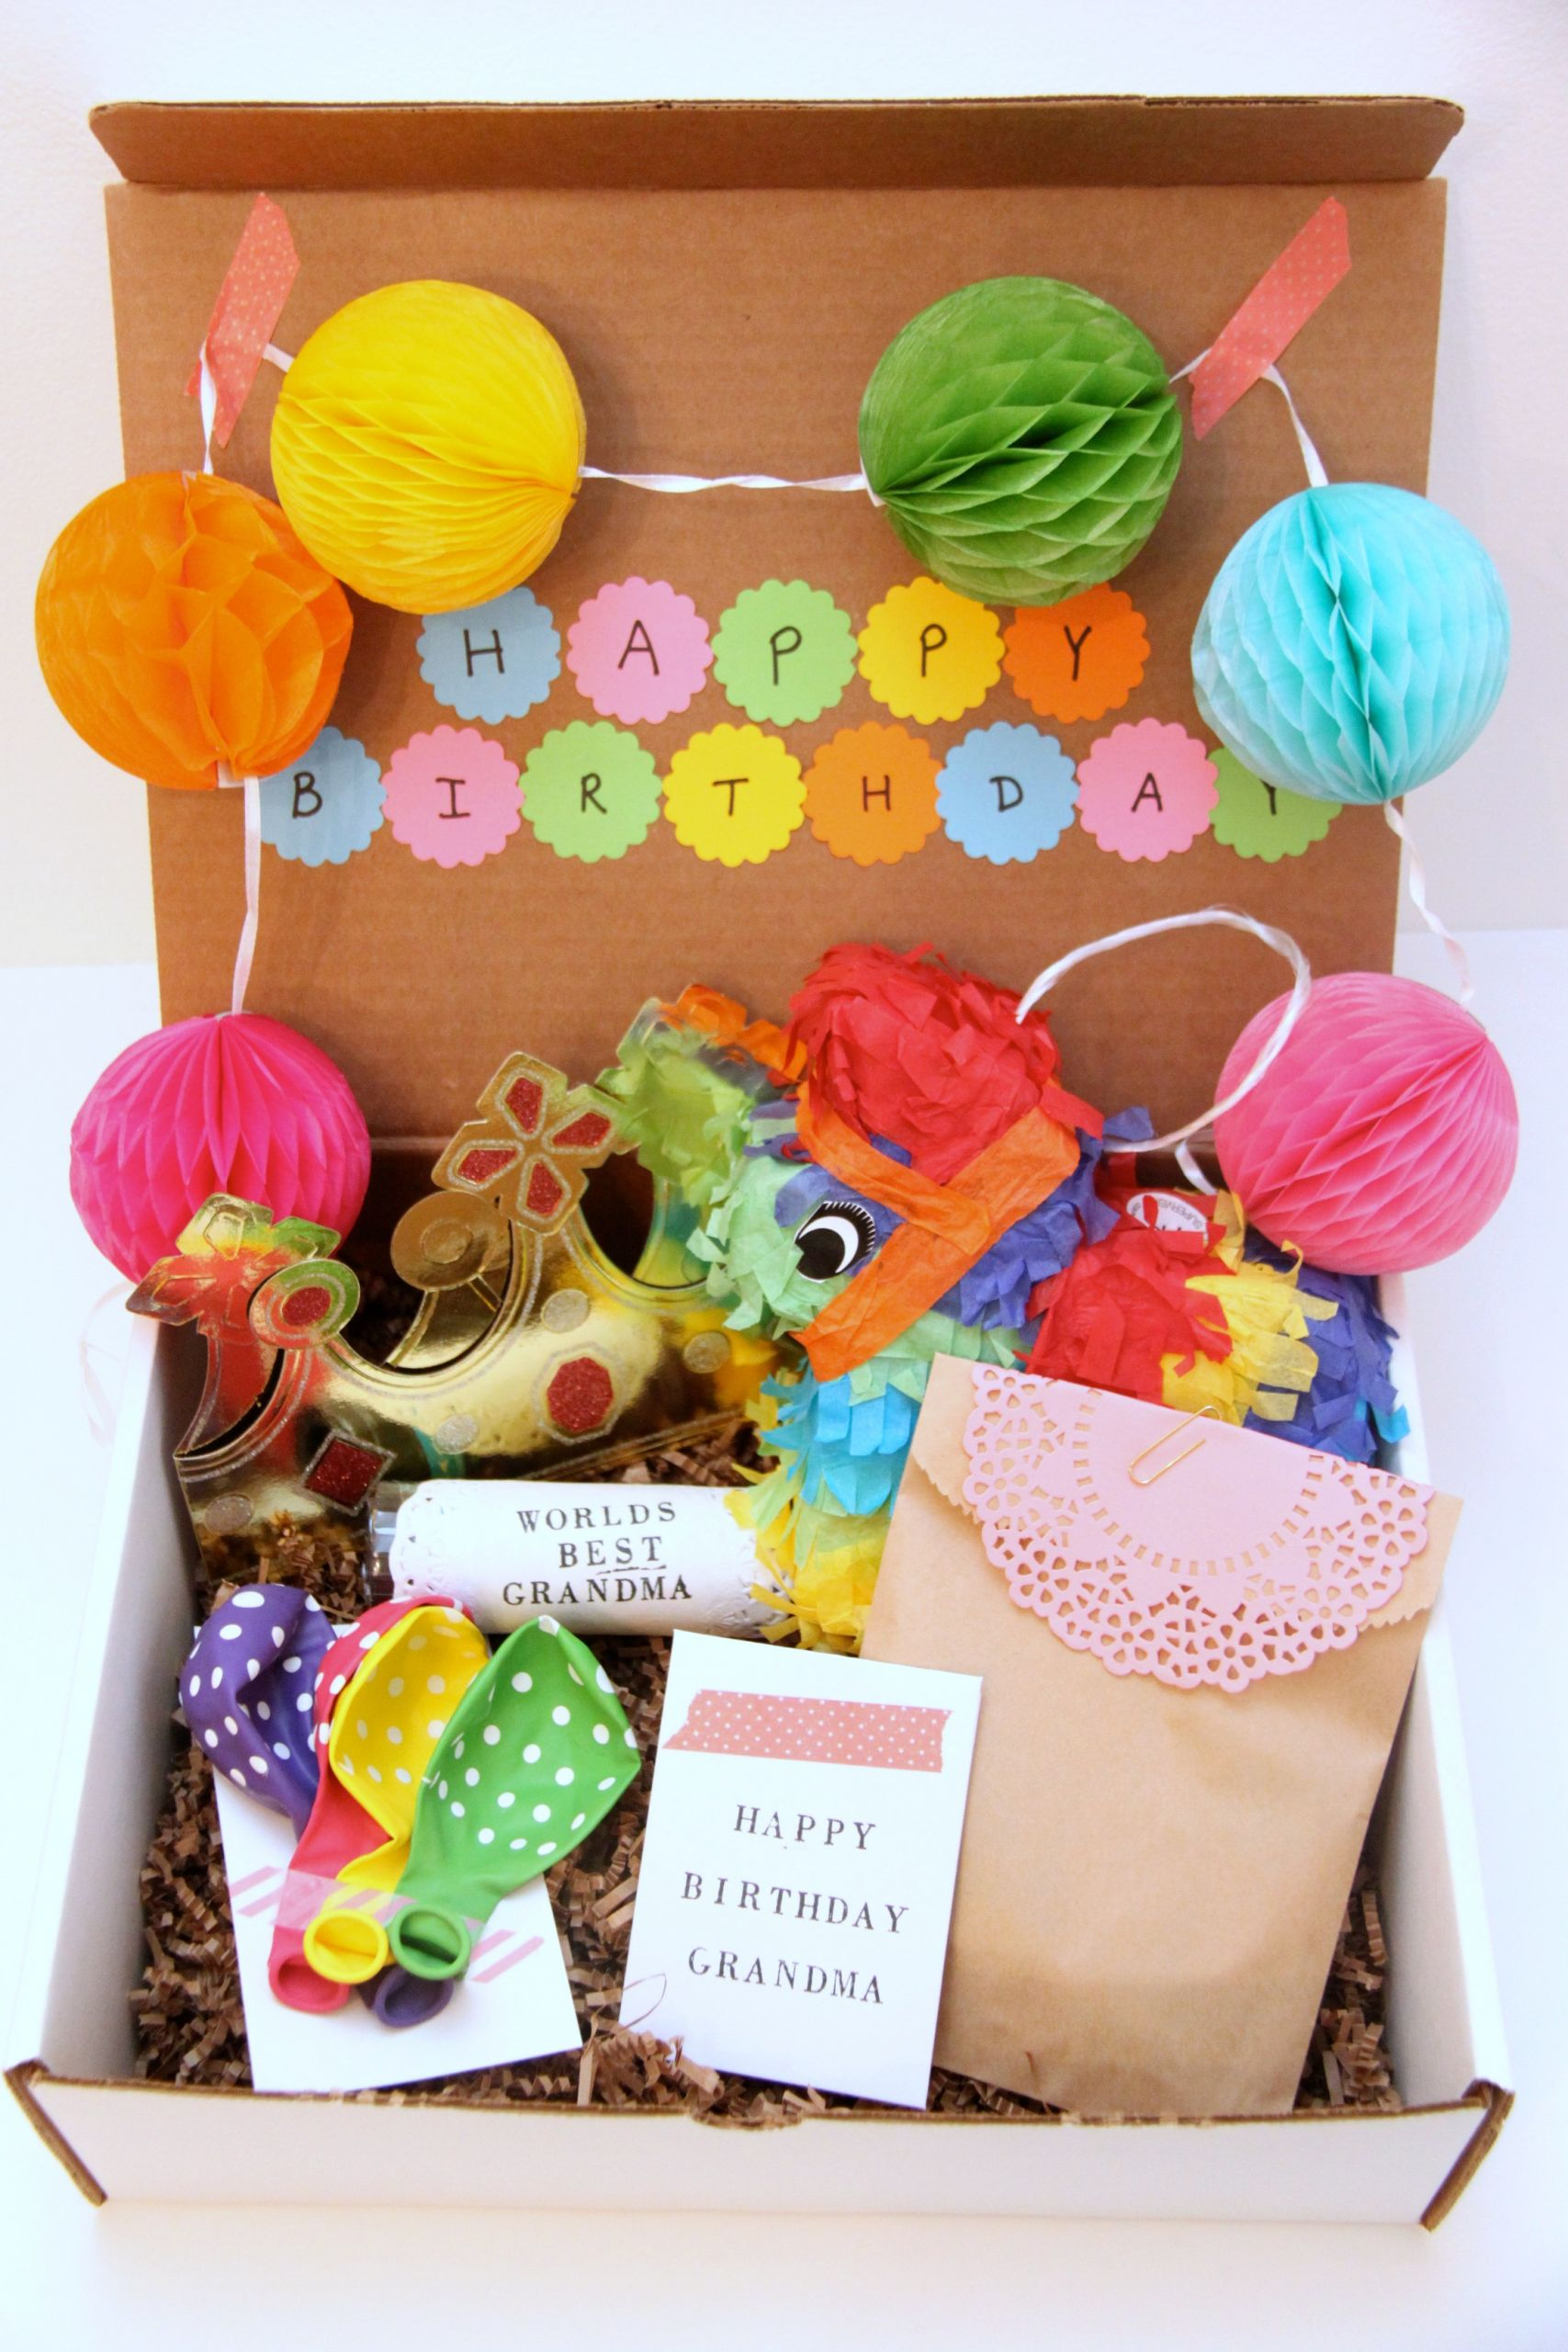 Ideas For A Birthday Gift  A Birthday In a Box Gift for Grandma Smashed Peas & Carrots